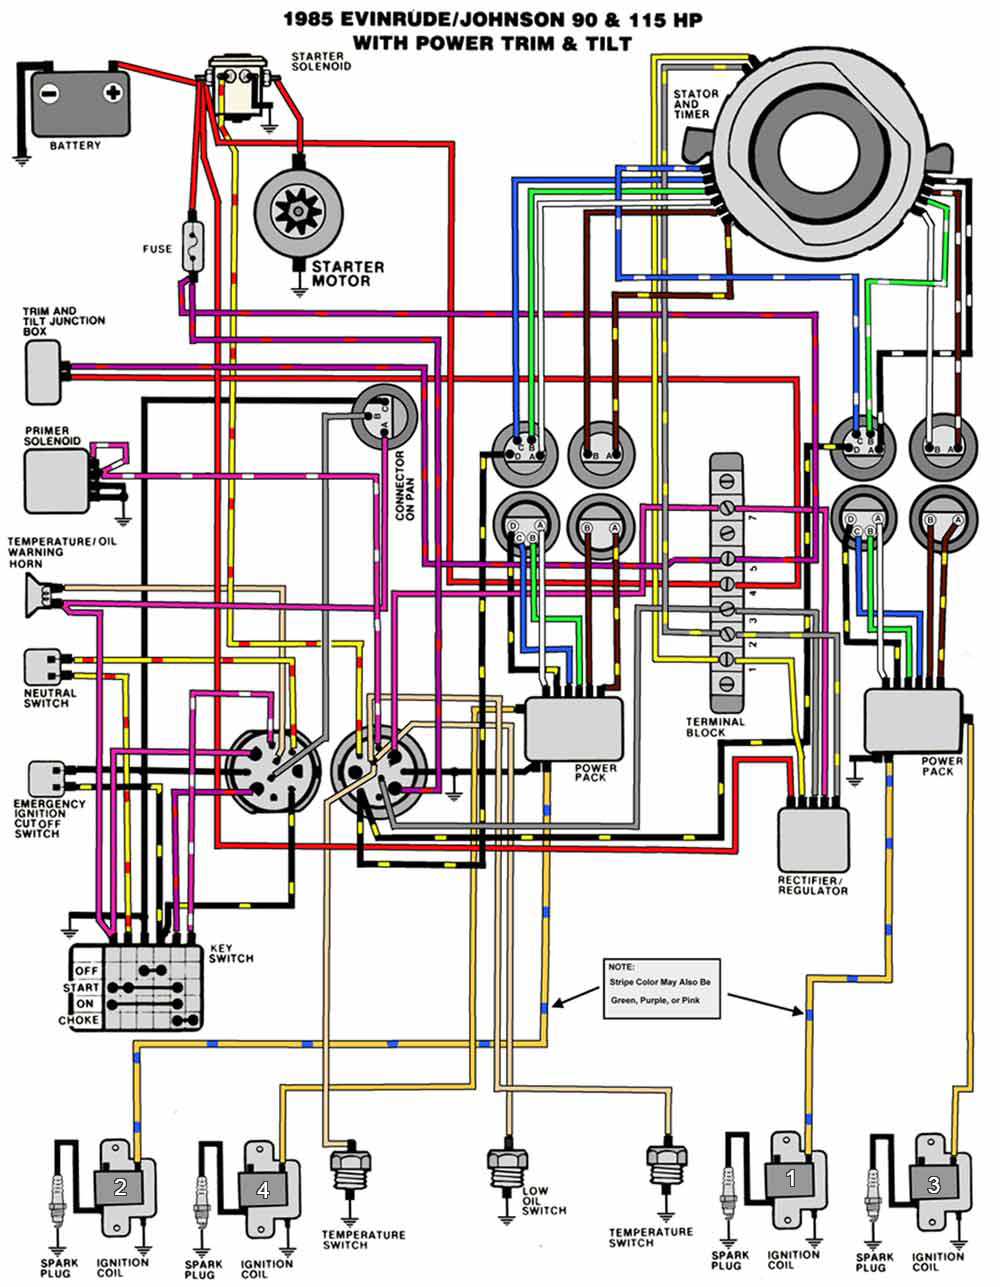 1985_90_115TnT mastertech marine evinrude johnson outboard wiring diagrams omc wiring harness diagram at gsmx.co